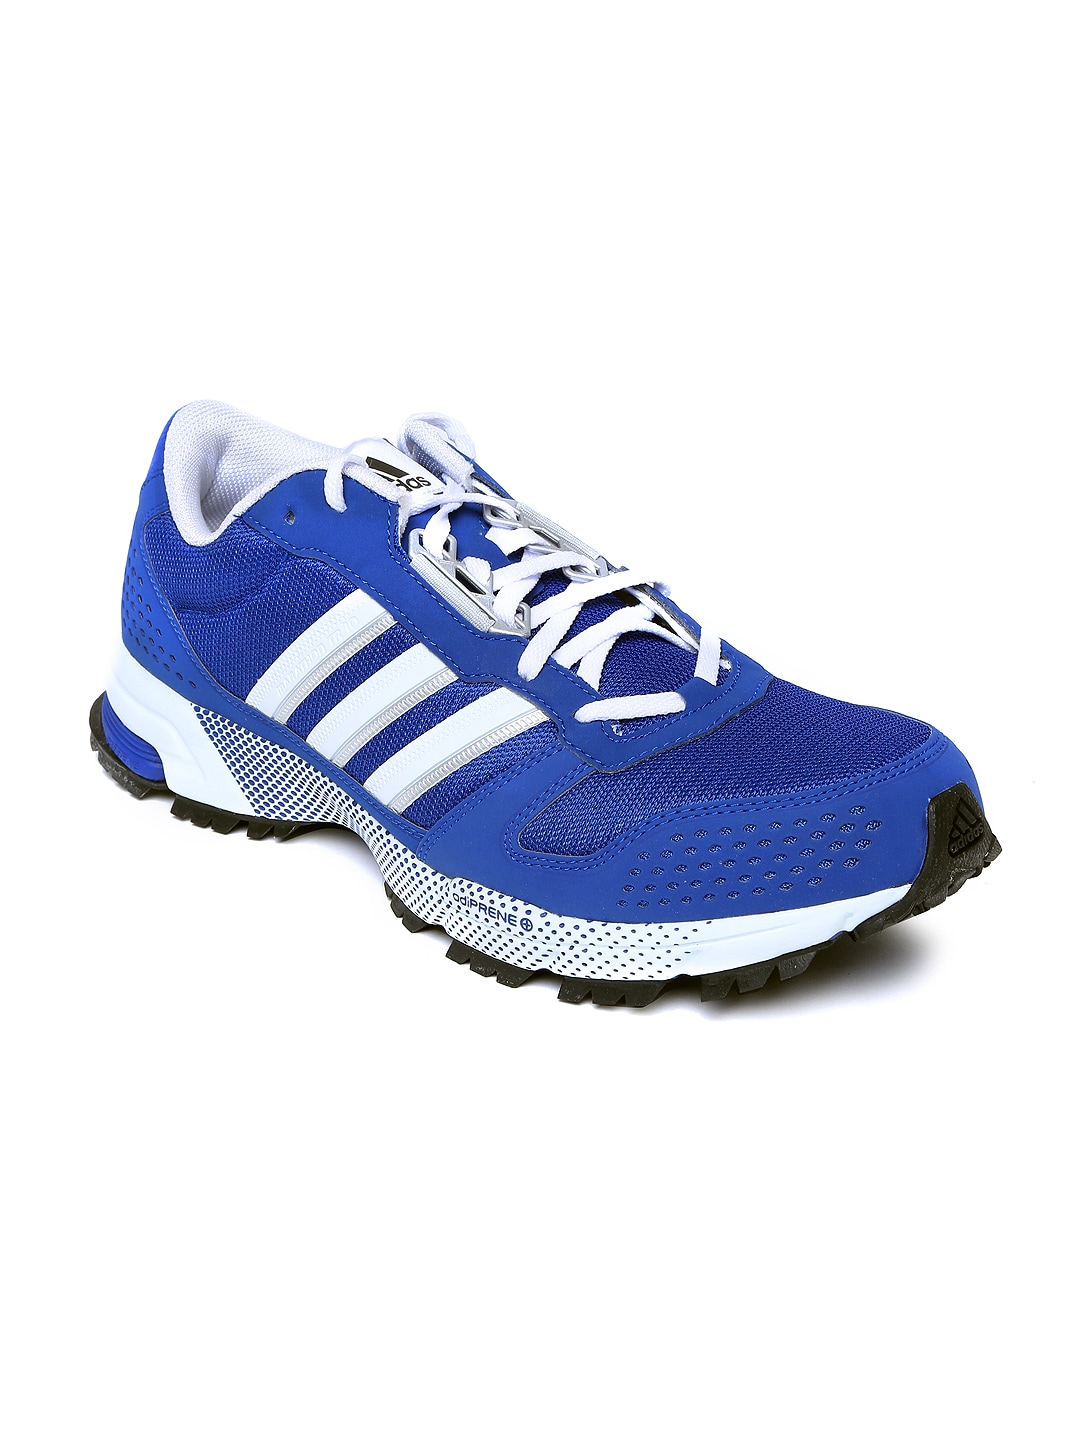 Adidas Marathon Shoes India